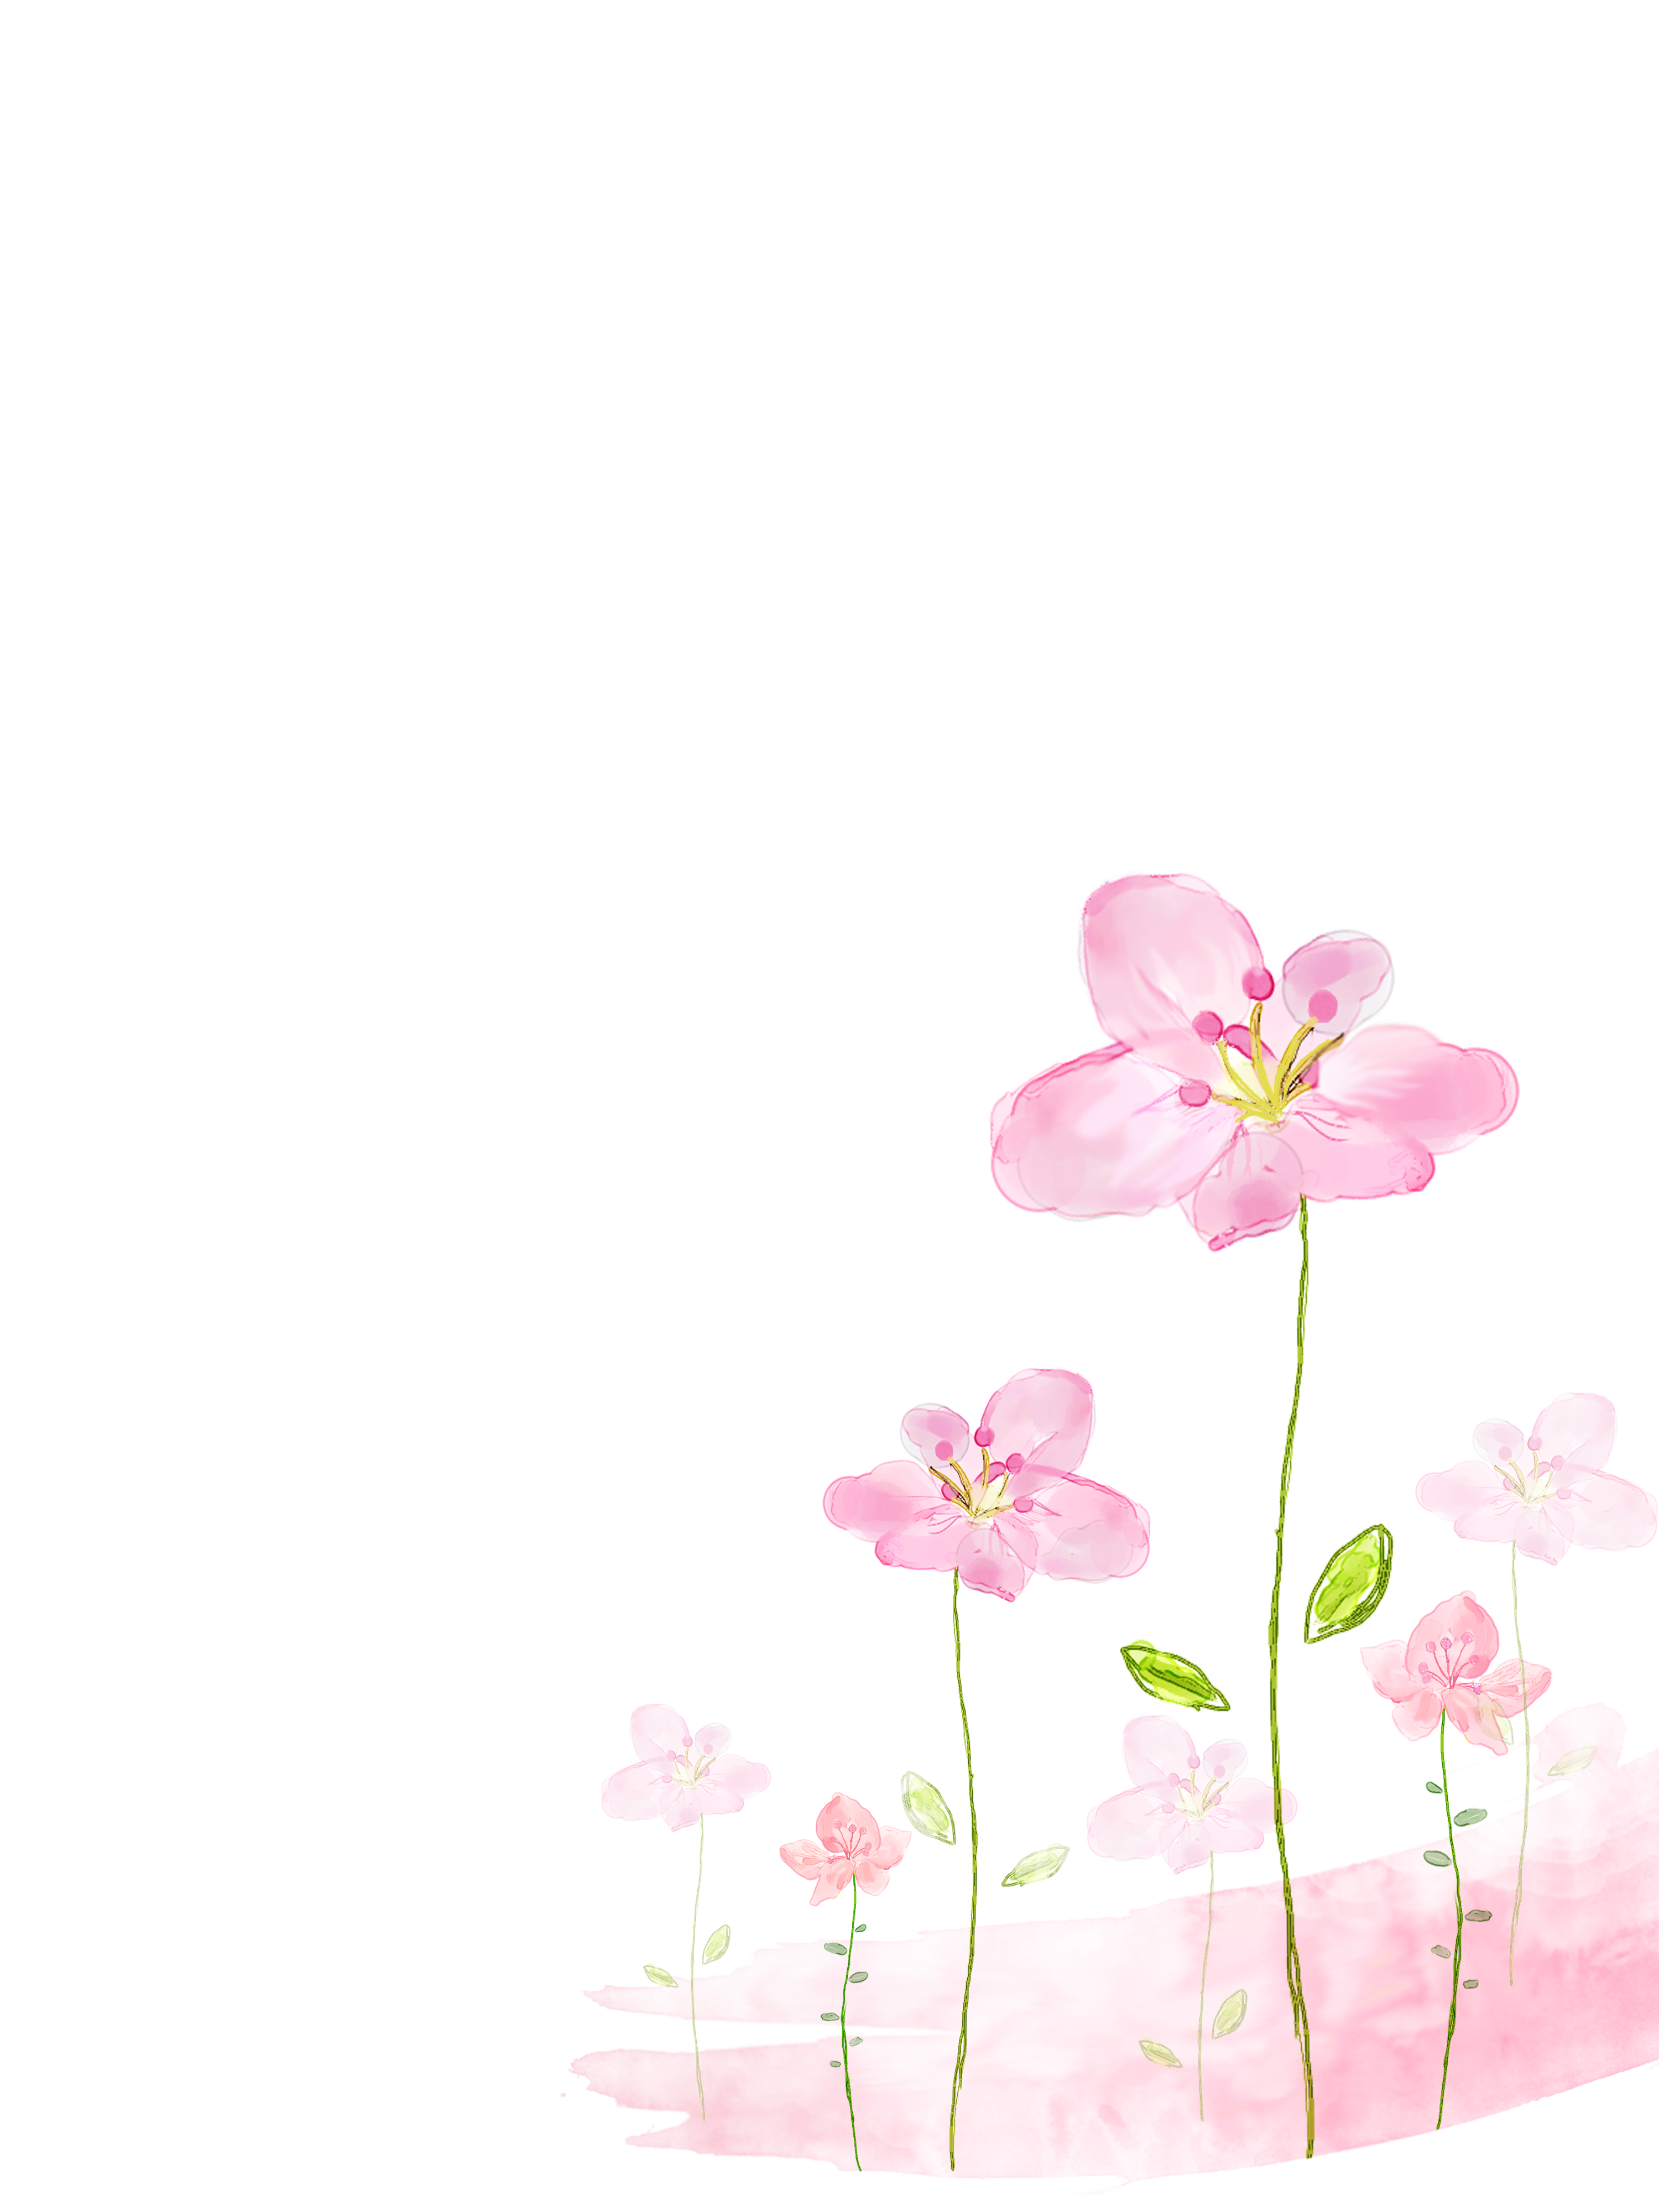 Flowers background png. Watercolor painting flower pink